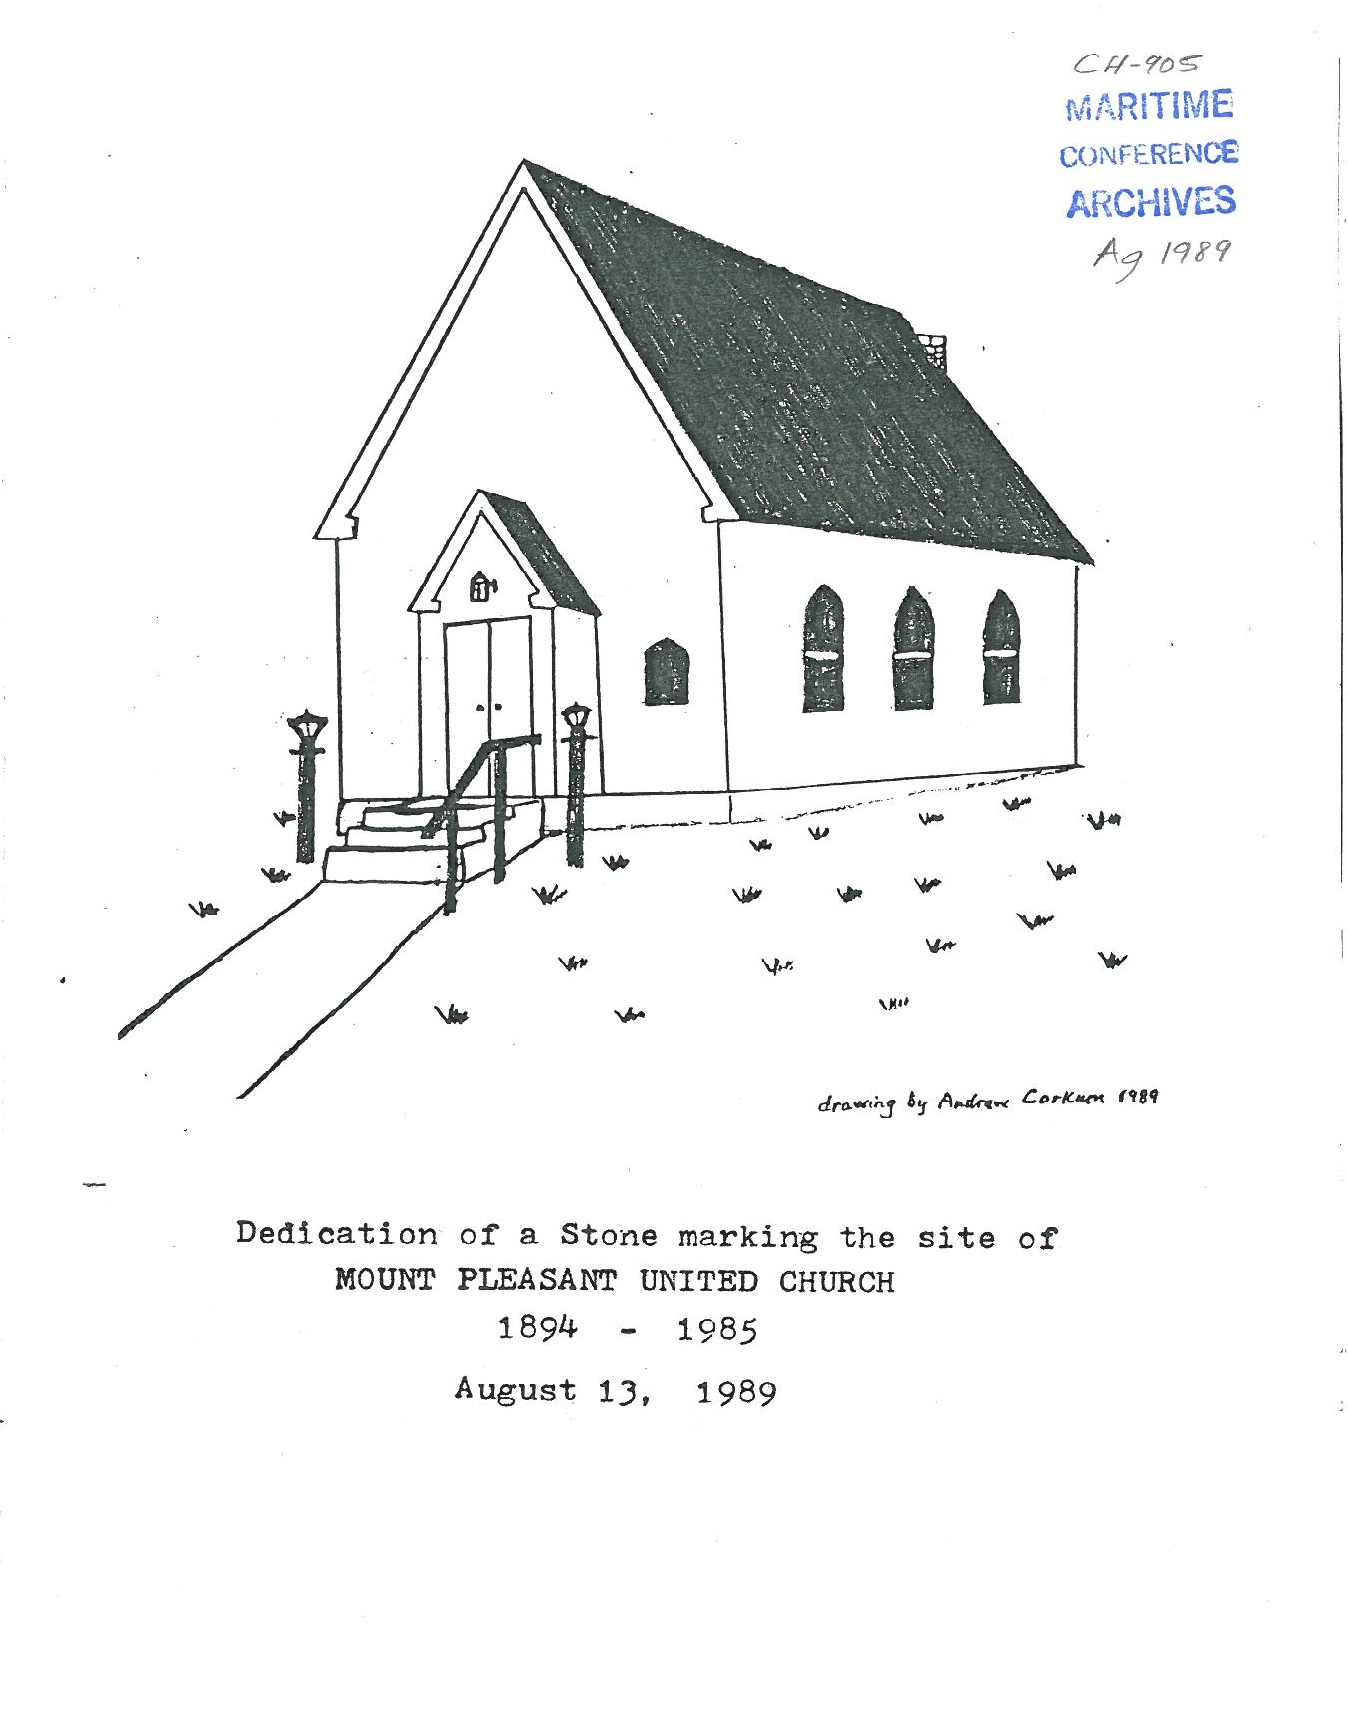 LaHave-New Dublin Pastoral Charge Records Listing